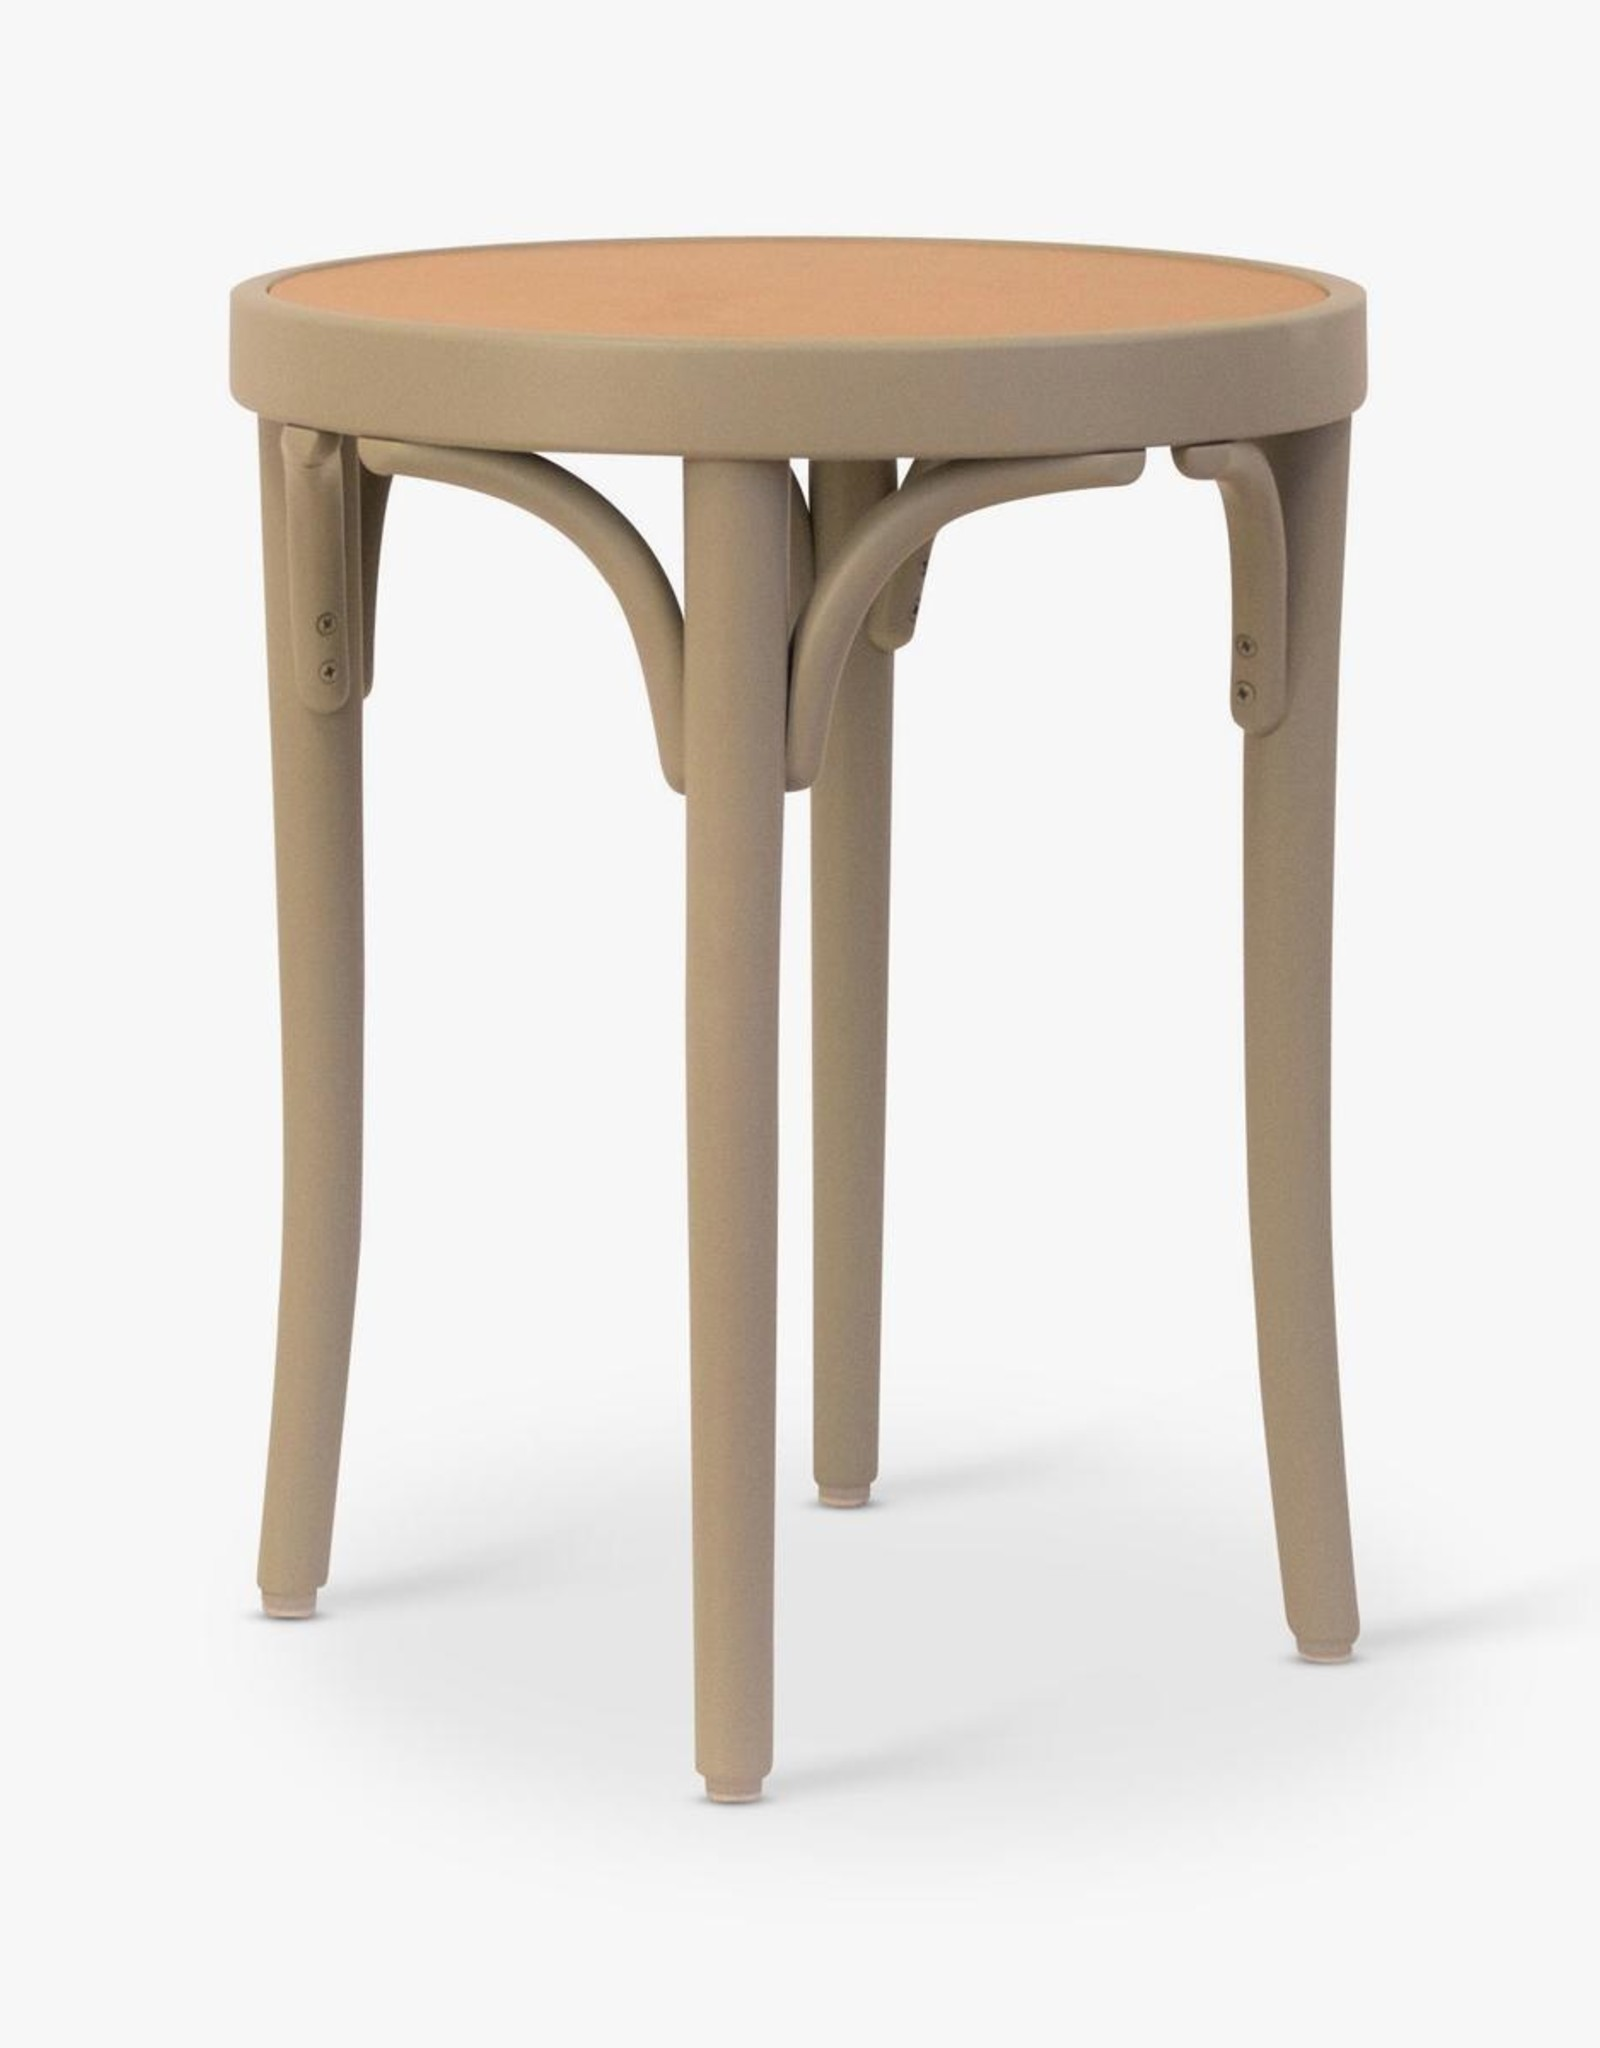 Diö side table by Gemla | Green lacquered beech frame | Congac leather seat